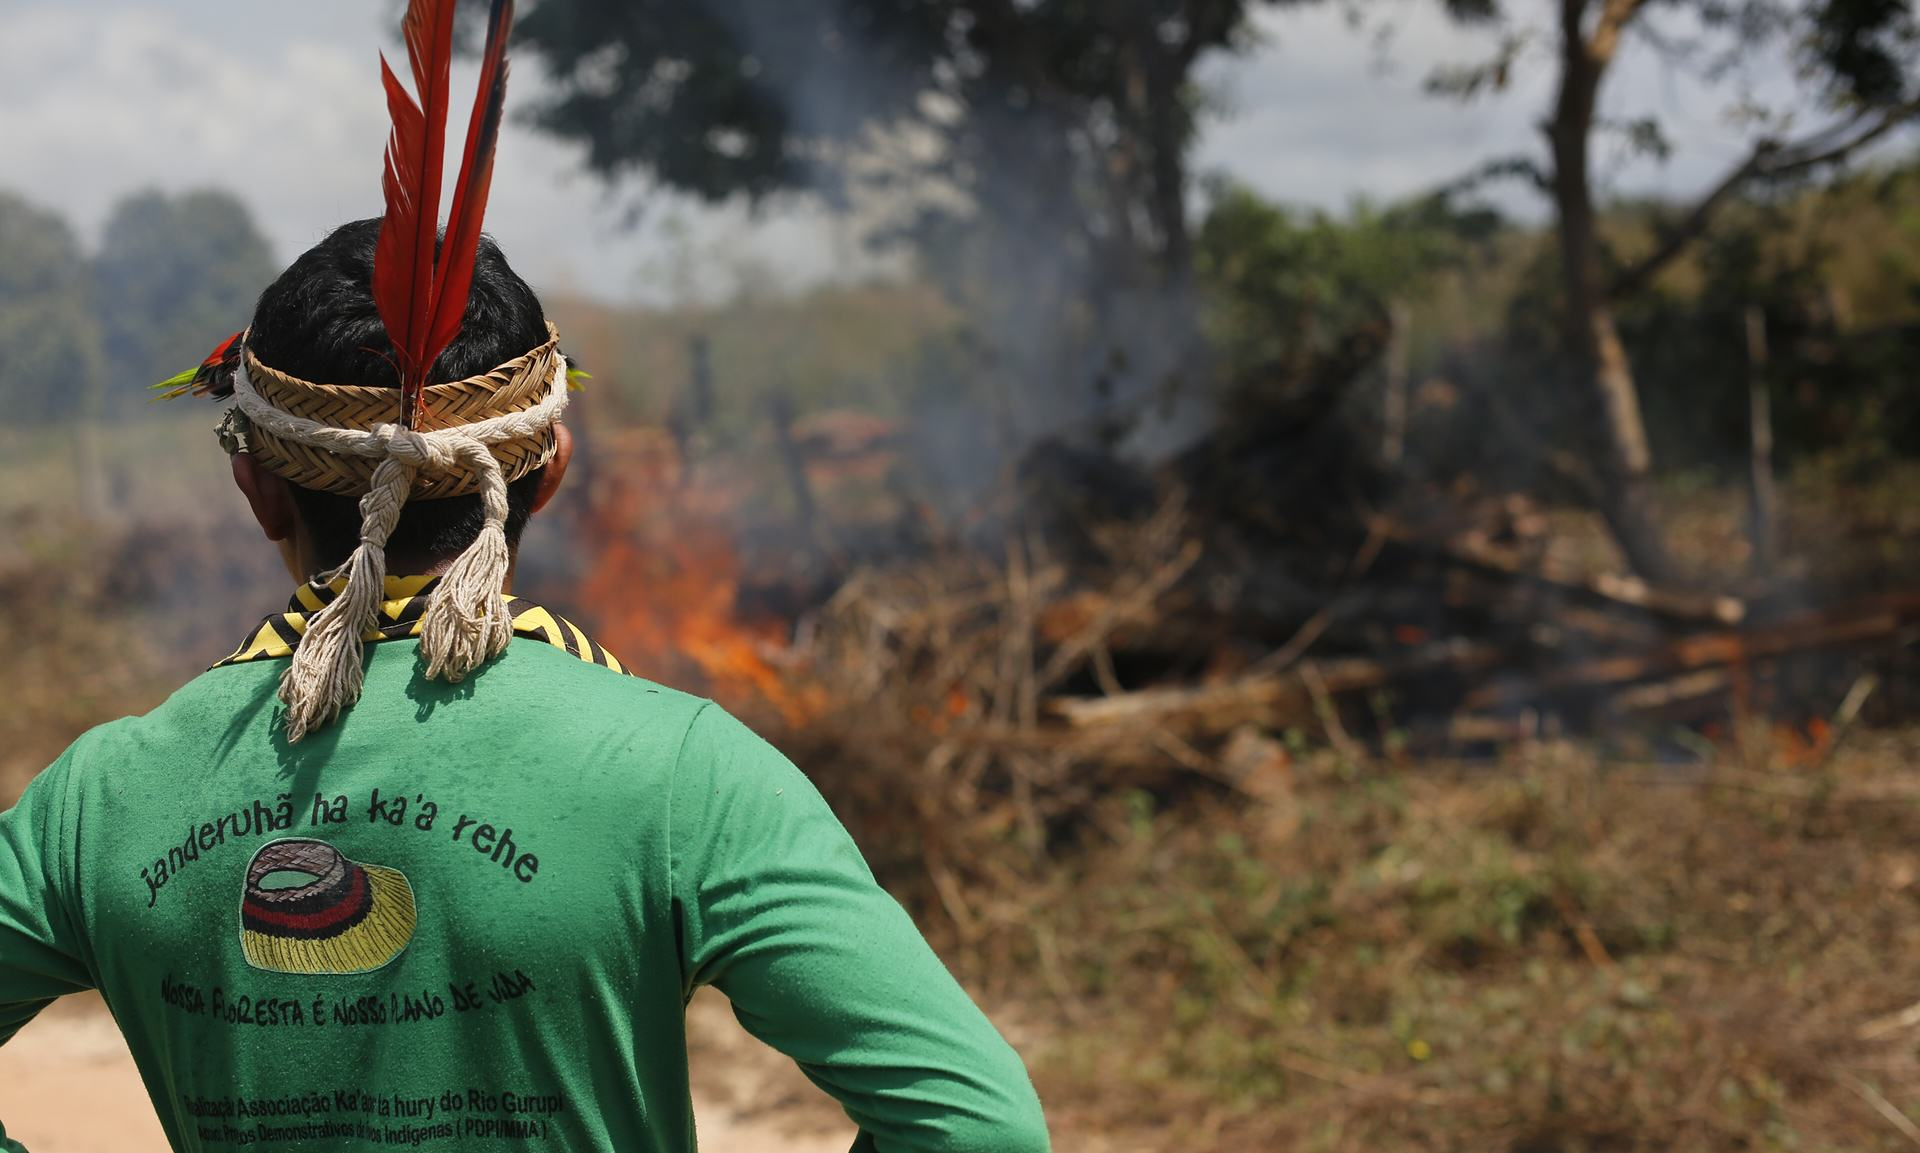 Ka'apor Indians set fire to illegally cut logs found near the indigenous territory. Photograph- Lunae Parracho:Greenpeace